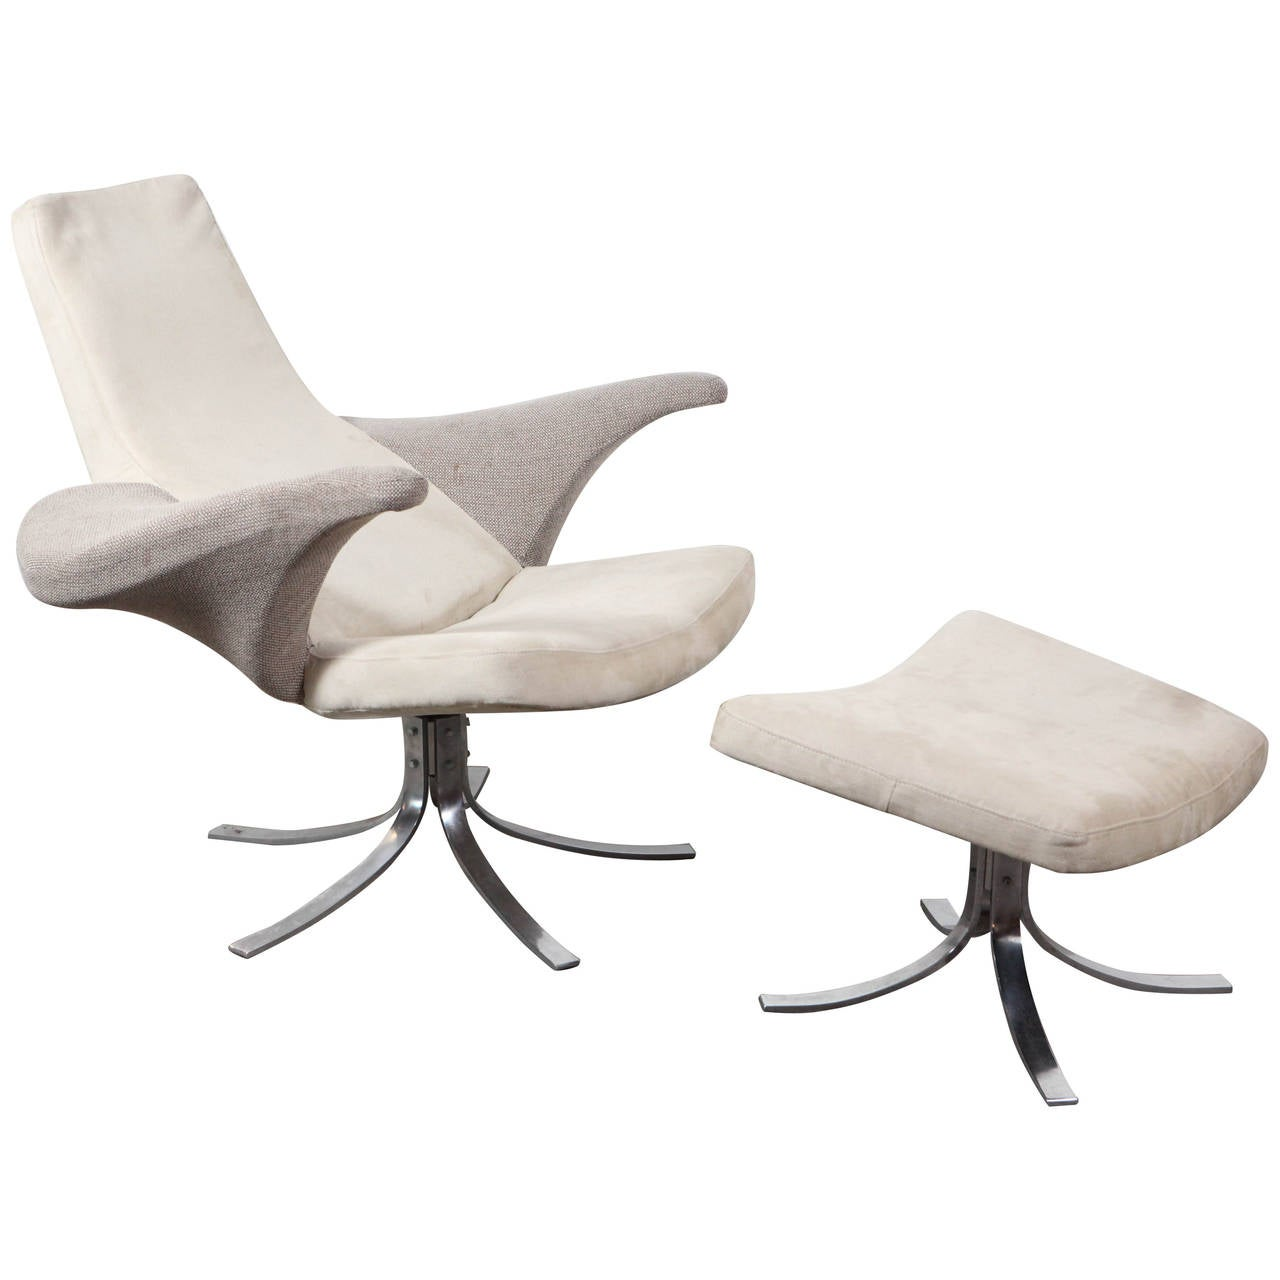 Seagull Chair and Ottoman